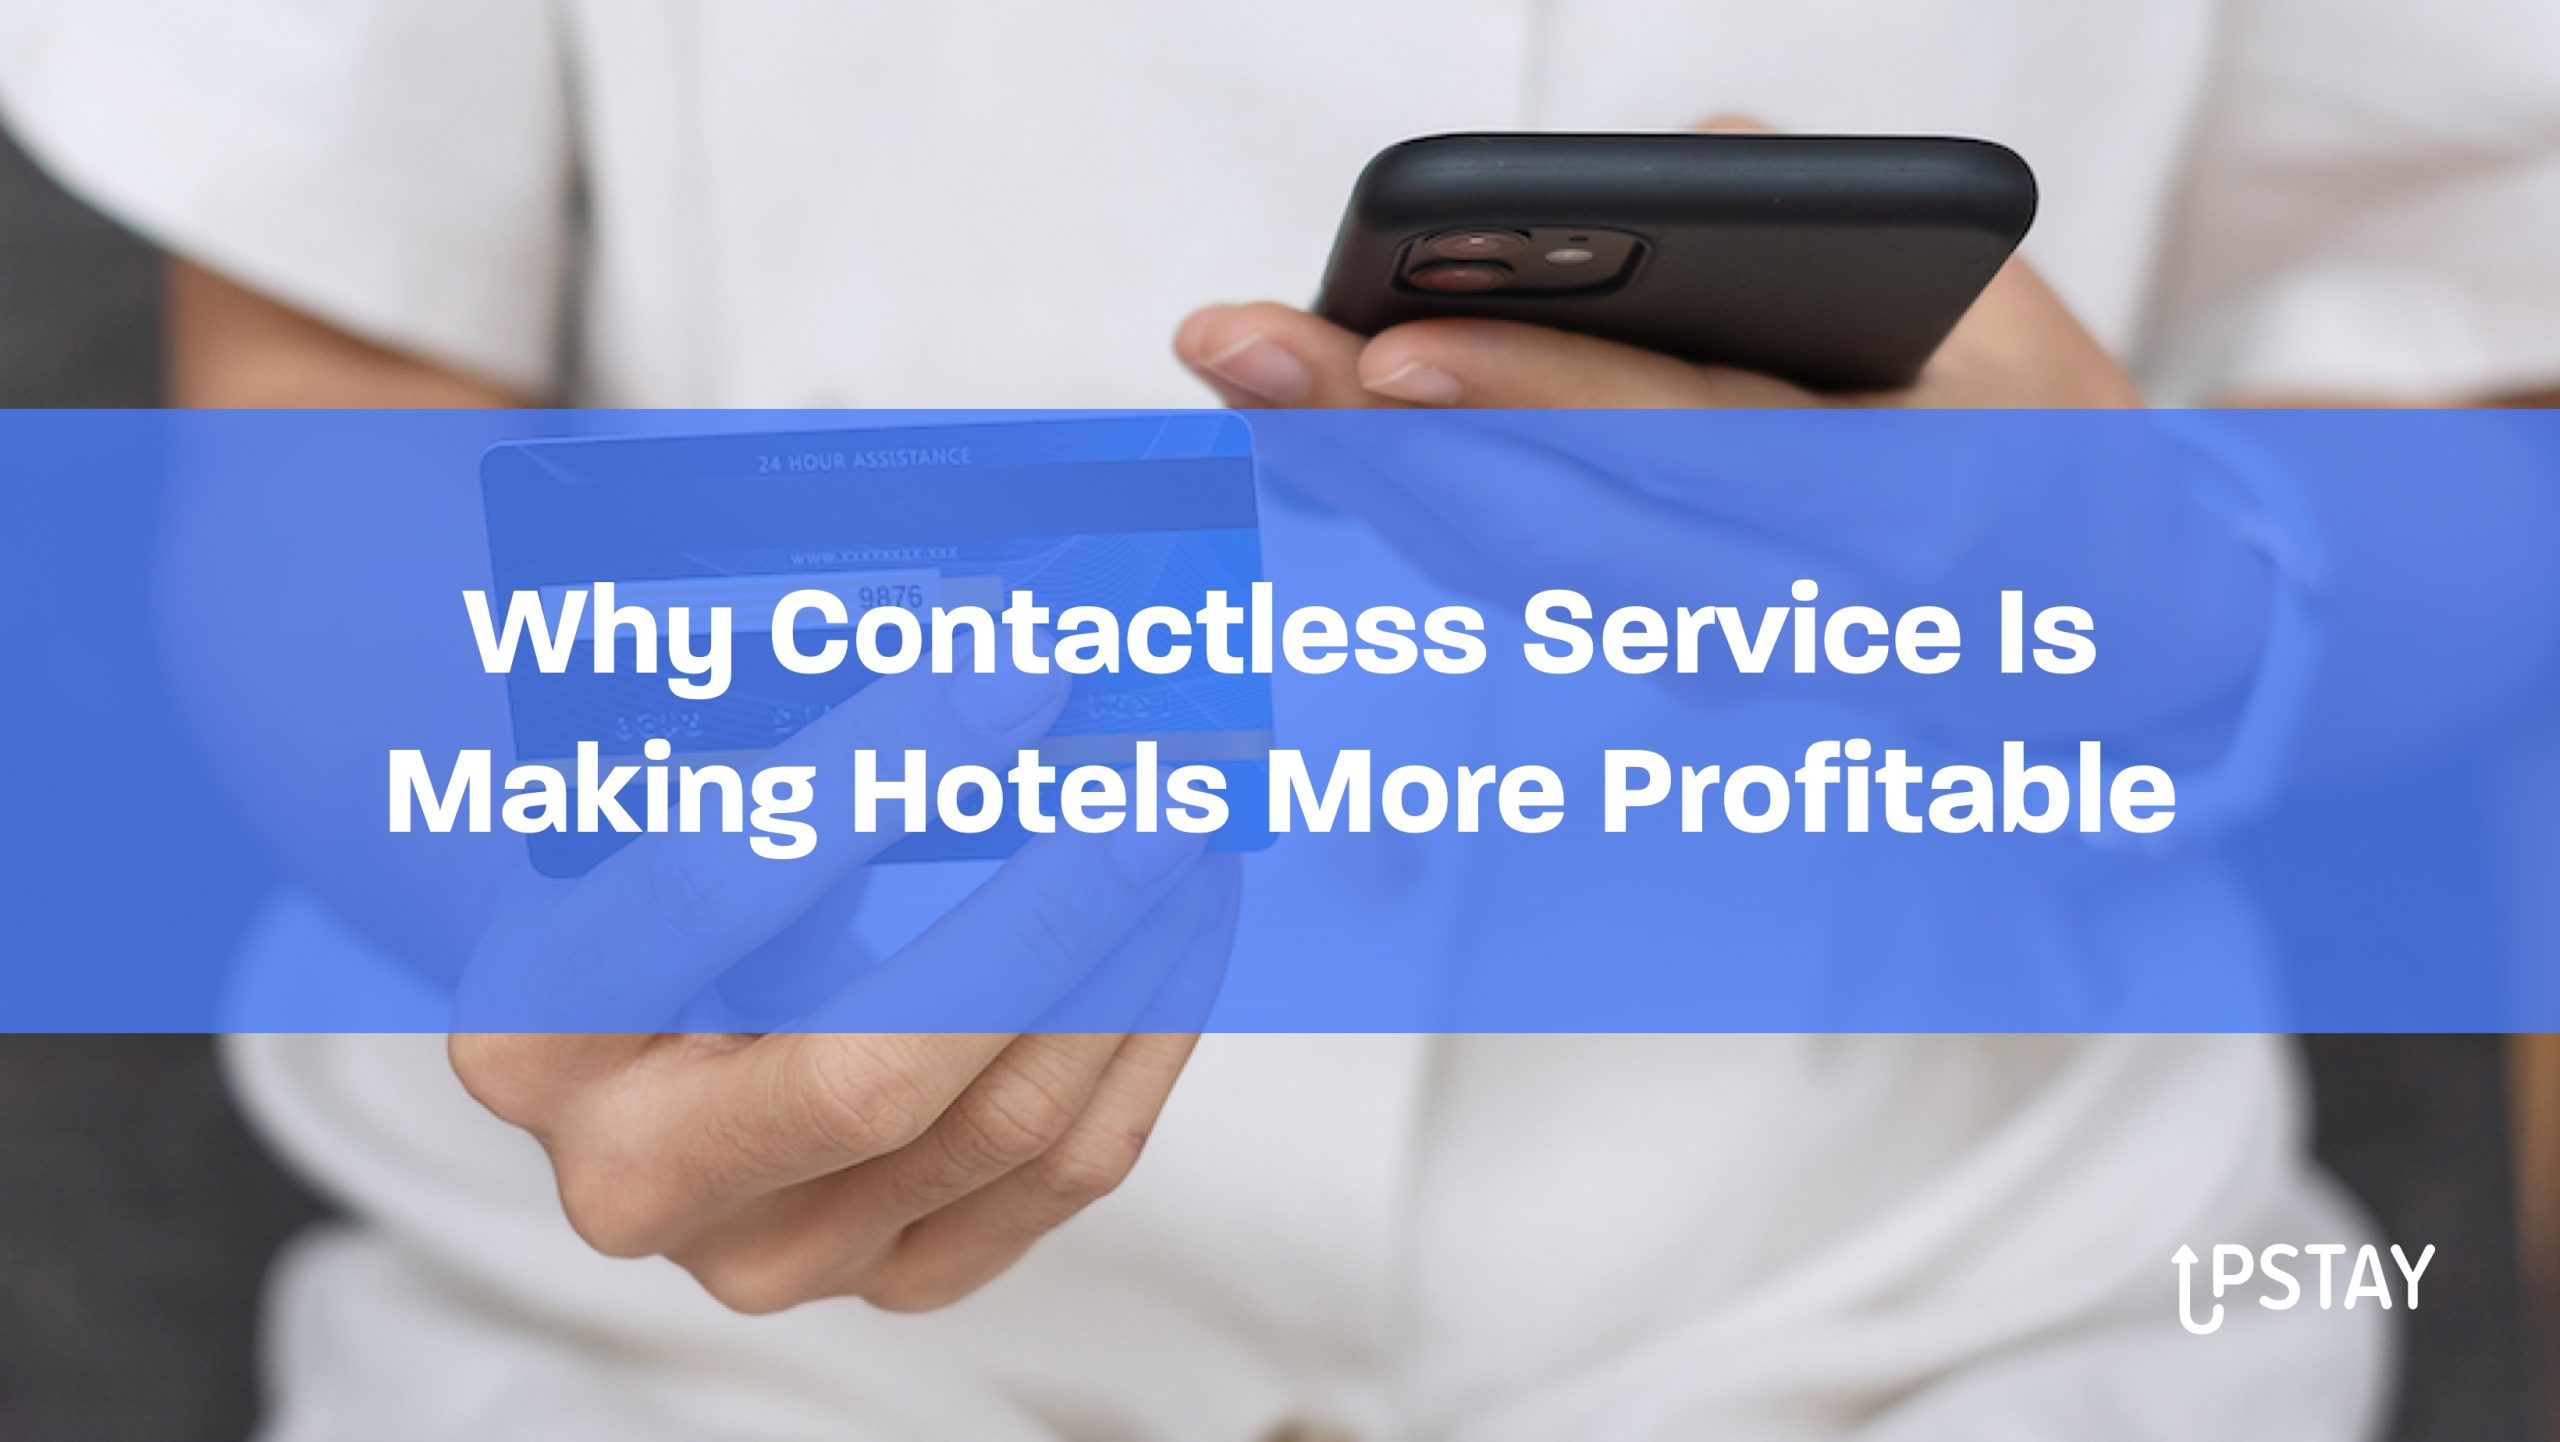 The motivations for hoteliers to move to contactless service and automation are clear. In the post-Covid era, hotels need to be more efficient, often with fewer staff, so contactless service and automated processes give them the tools to do more with less.